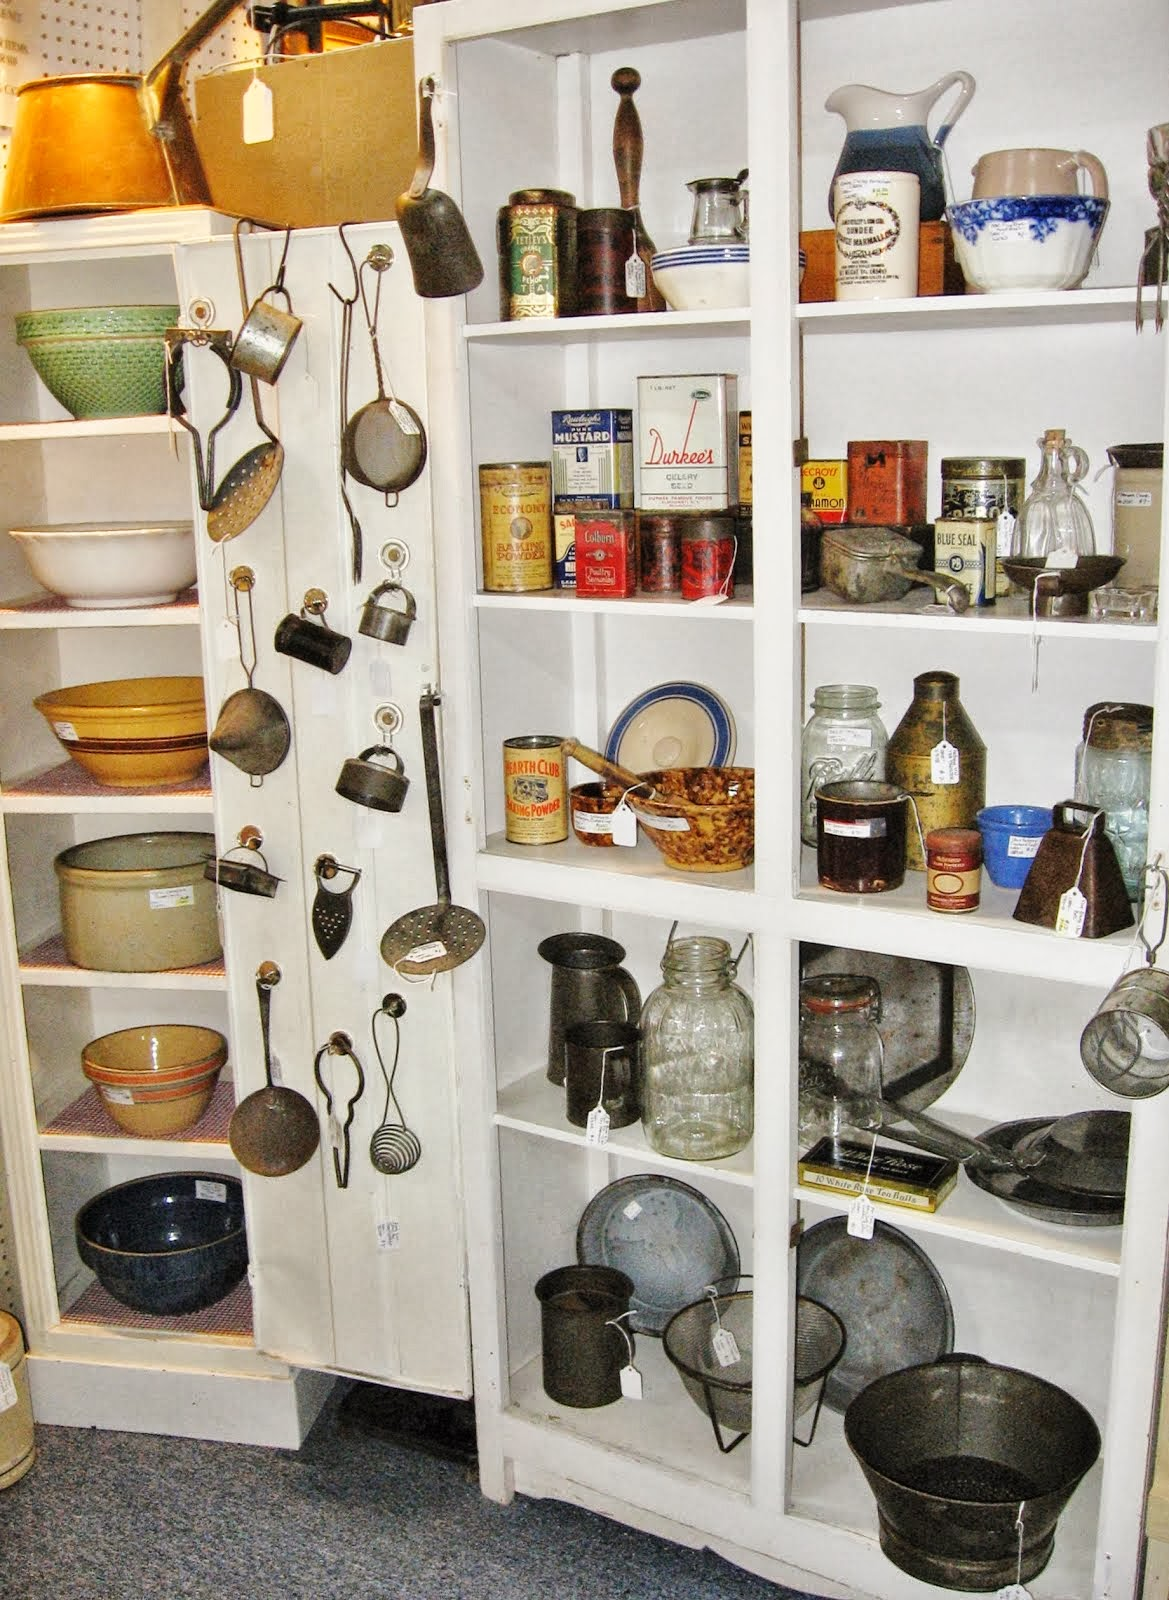 Kitchenware Section....